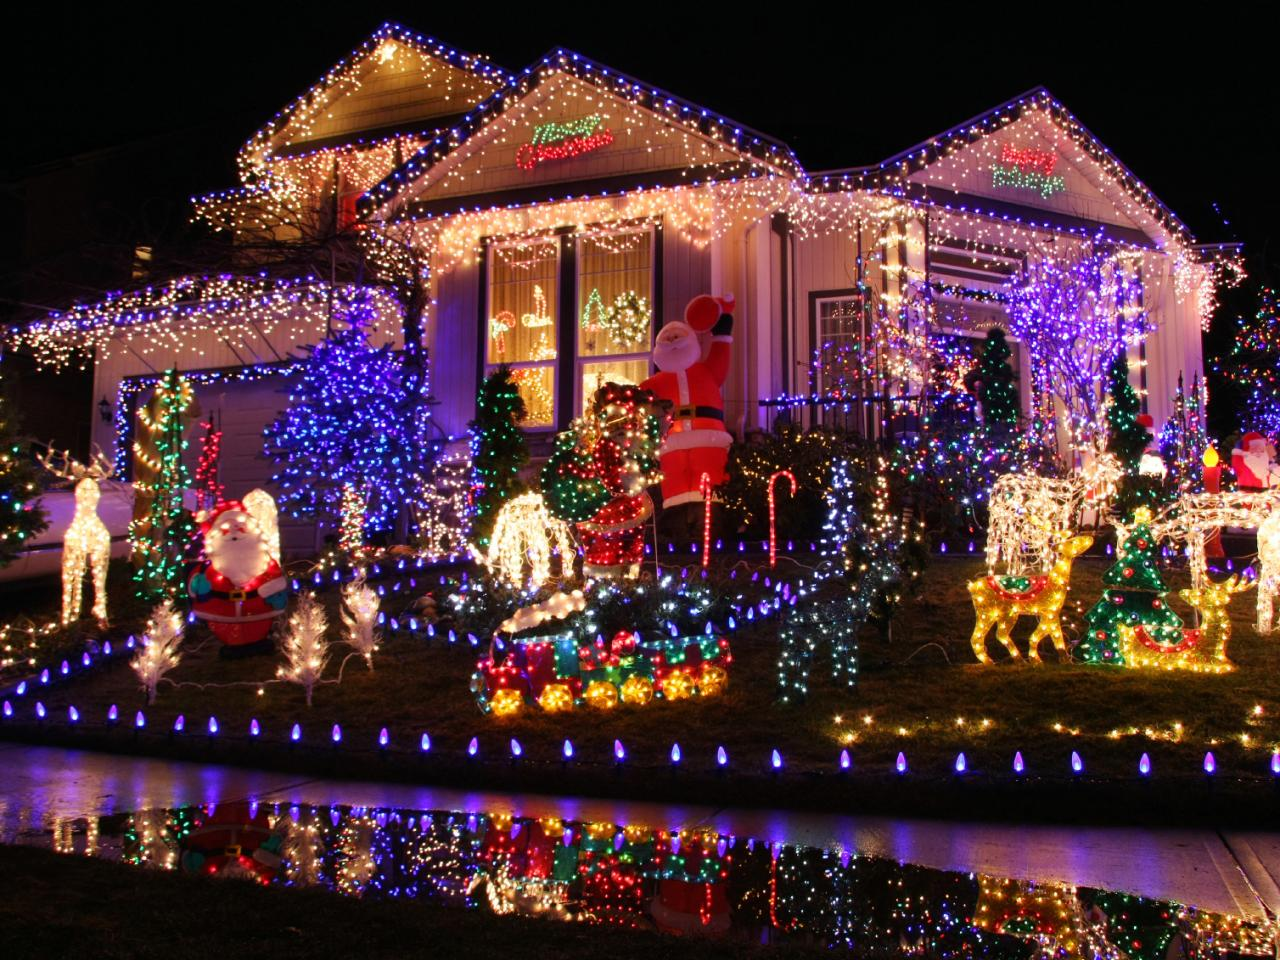 noel noel - Christmas Lights And Decorations